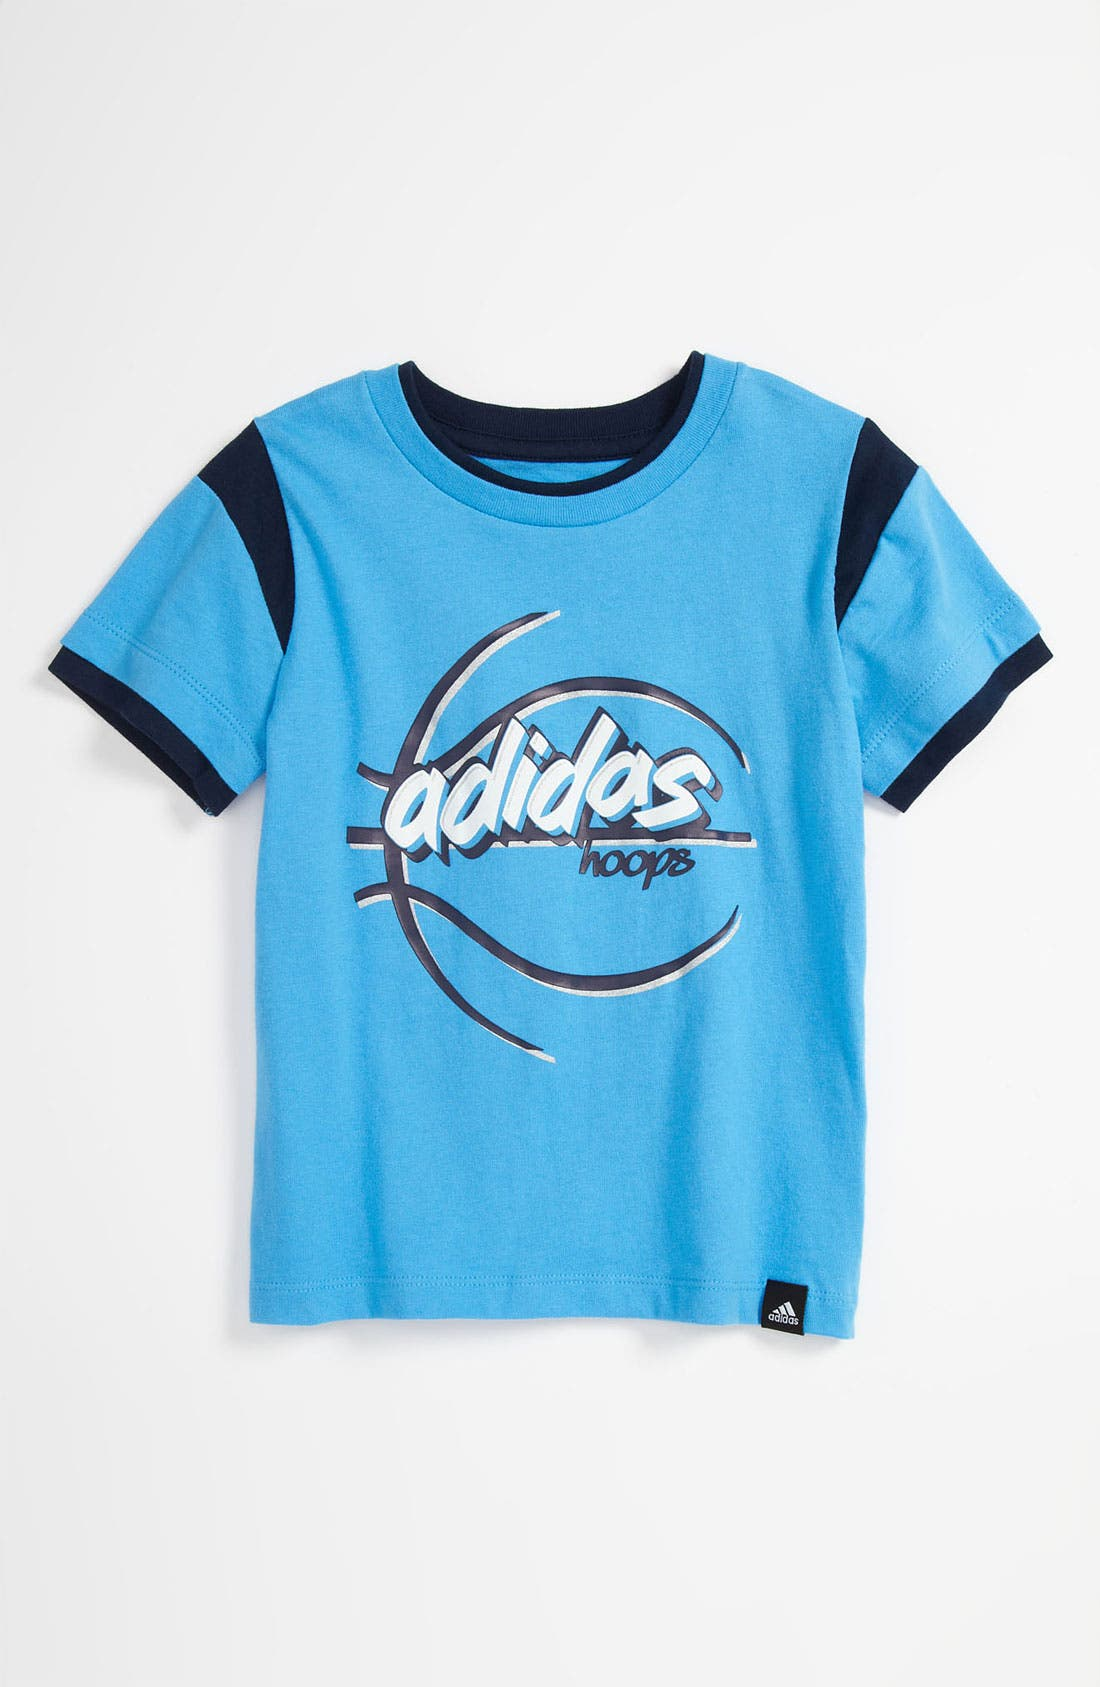 Alternate Image 1 Selected - adidas 'Can't Lose' T-Shirt (Toddler)